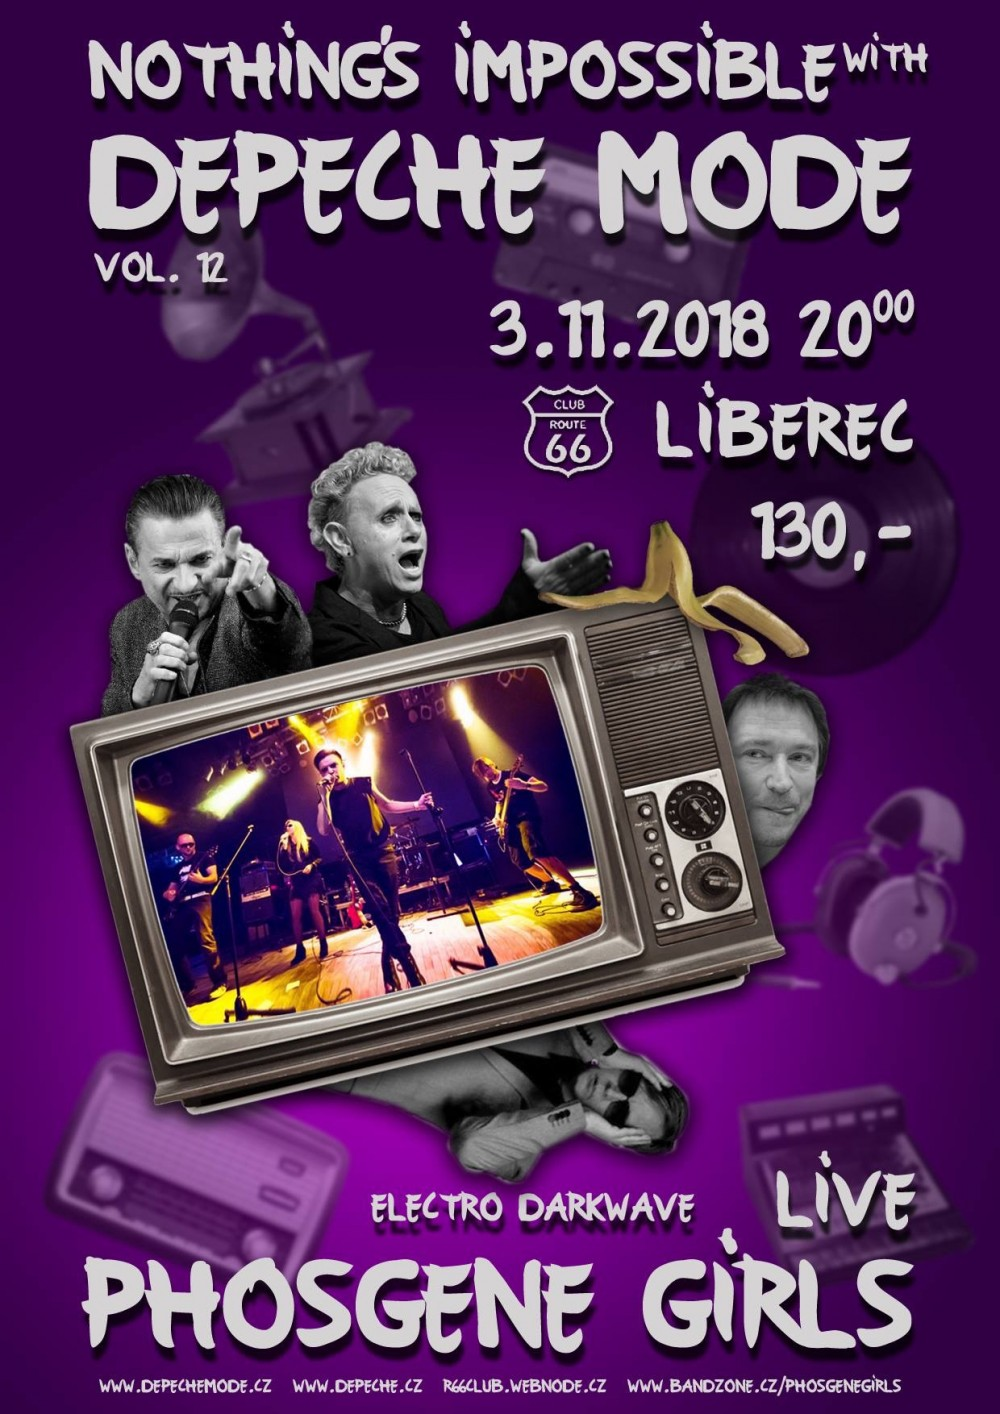 Liberec: Depeche Mode Nothing's Impossible with Vol. 12